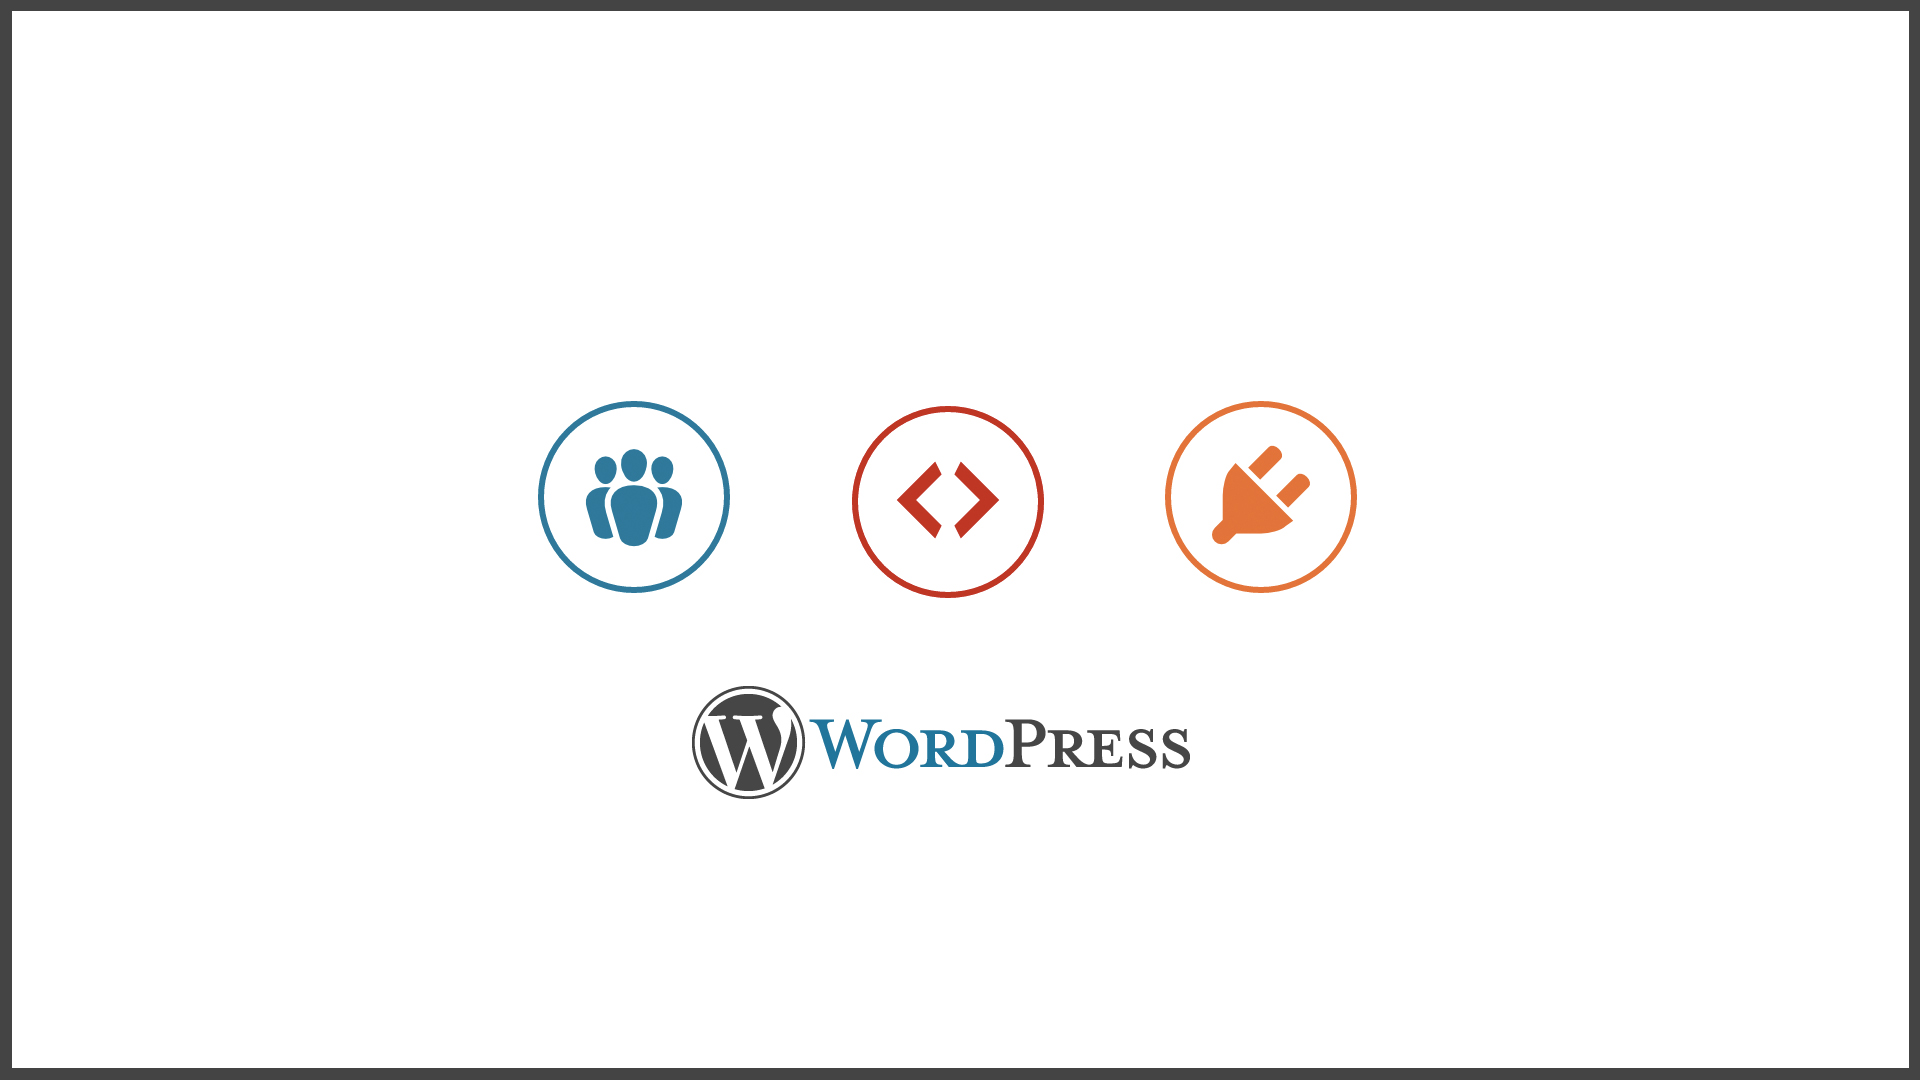 One Year Later - My Journey with the WordPress Community